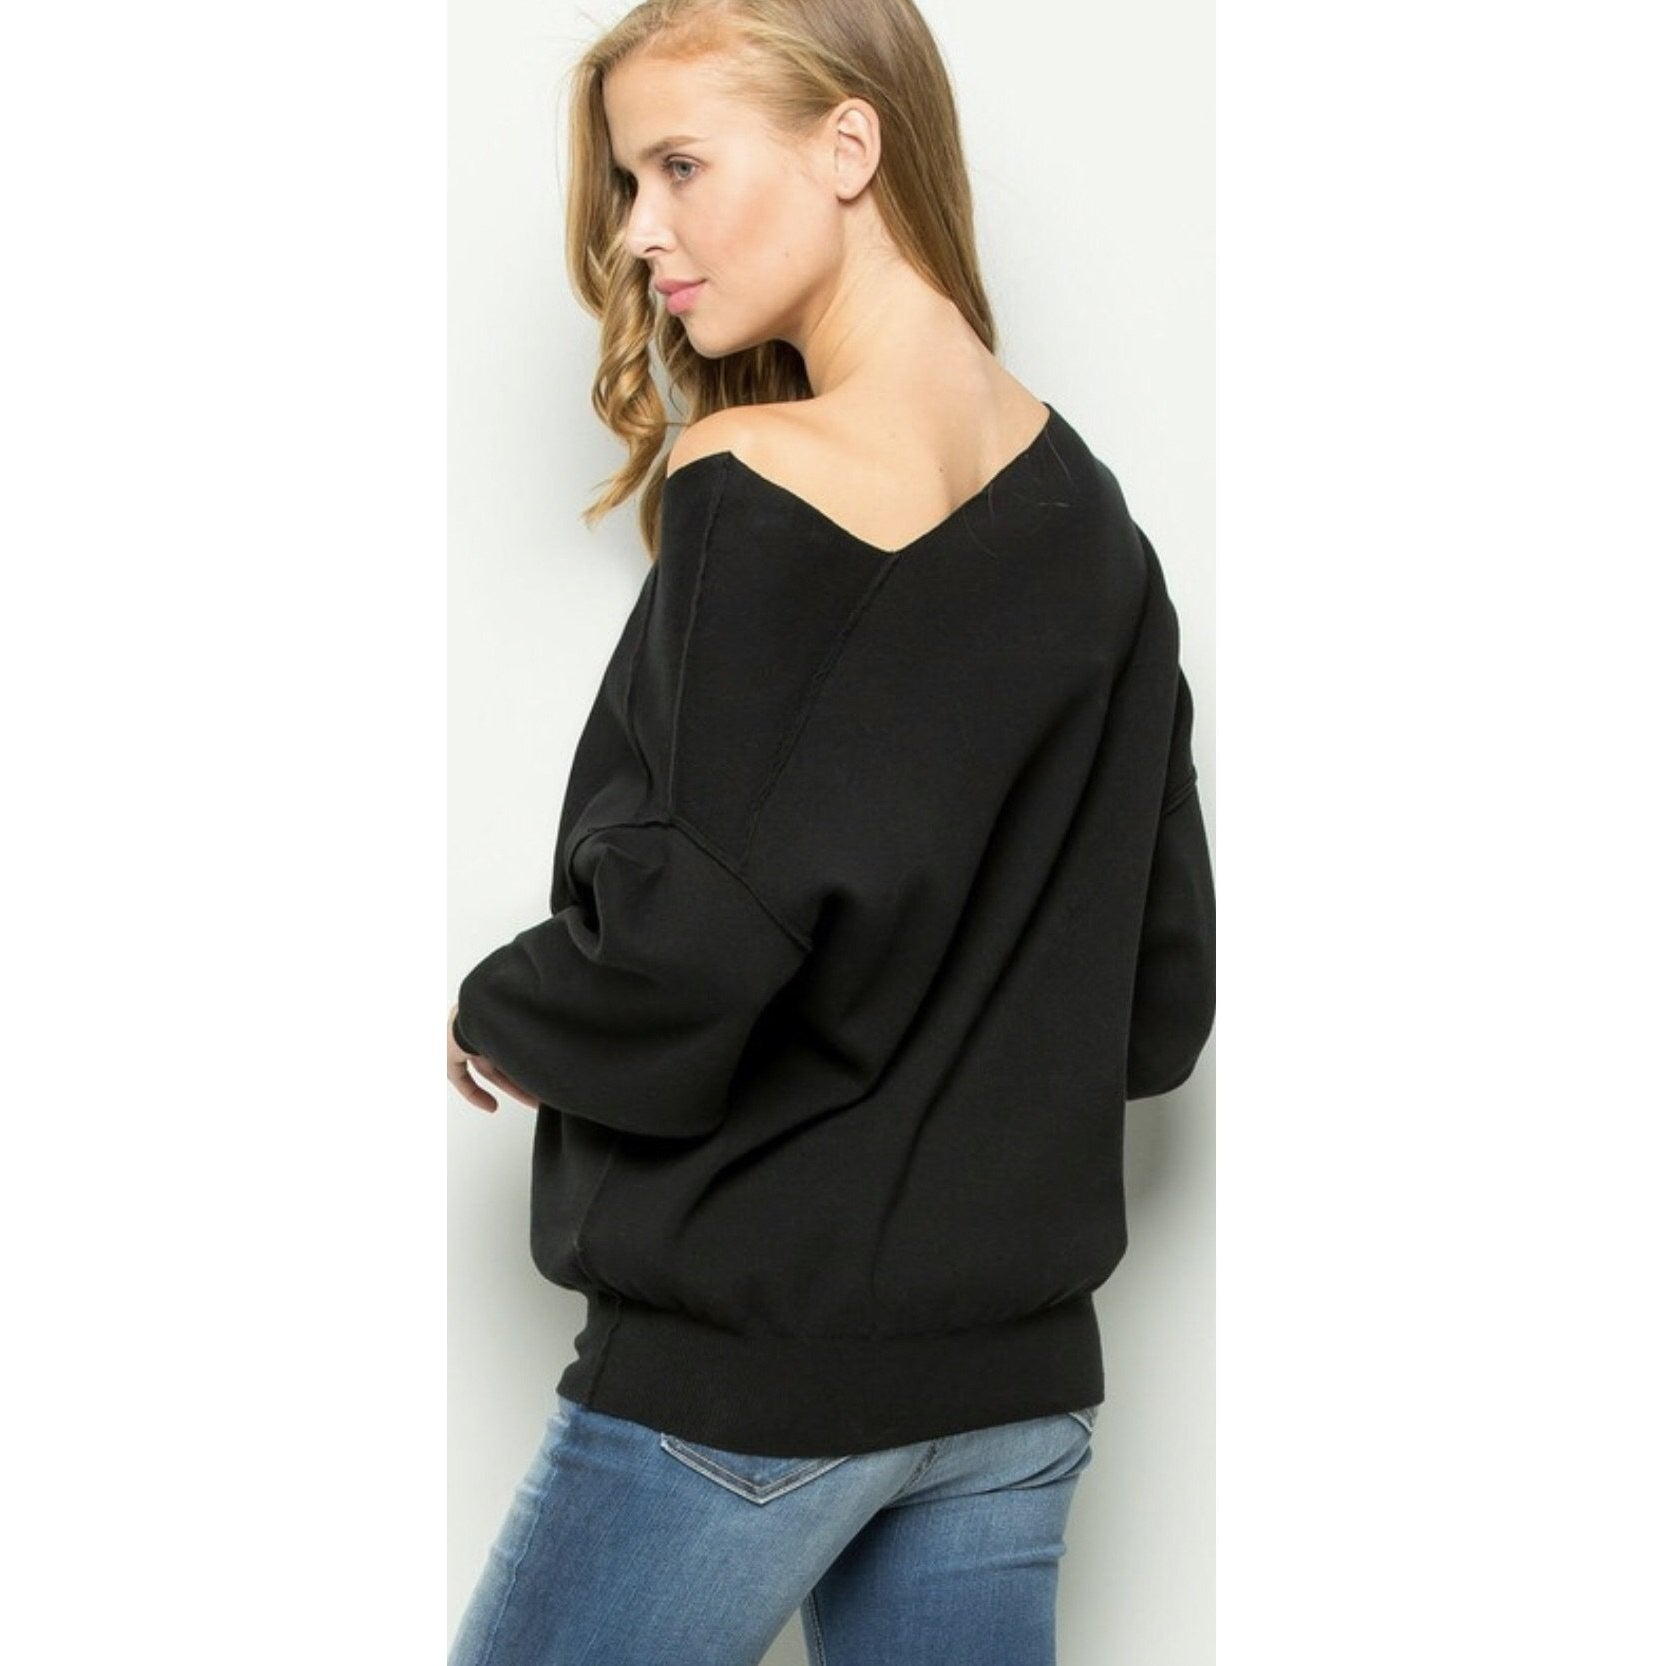 Cuddle Up Sweater - Black